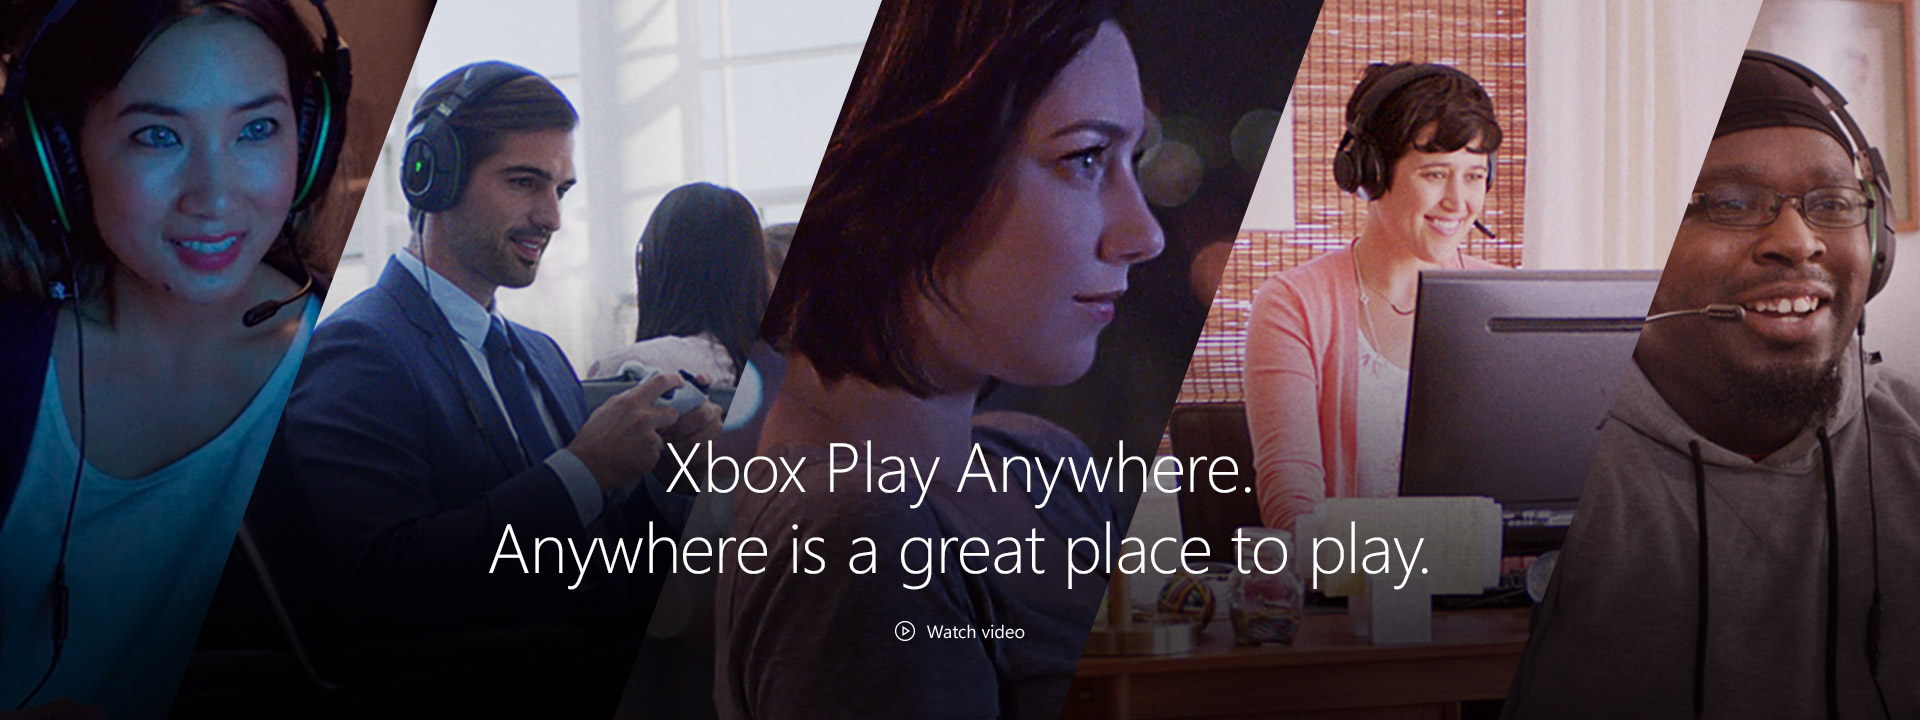 Xbox Play Anywhere